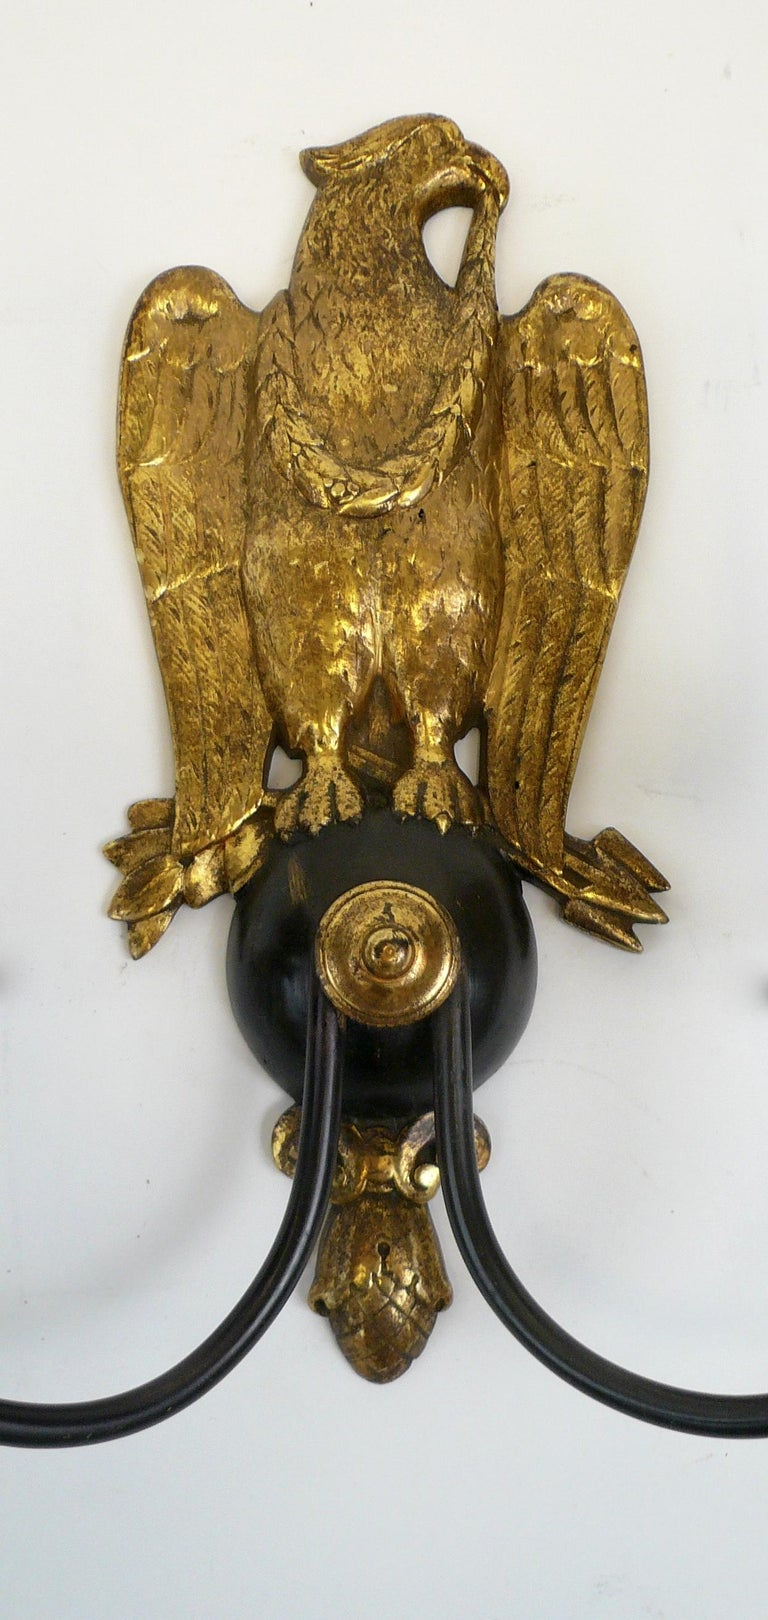 Pair of Regency Style Bronze Eagle Sconces Attributed to E, F, Caldwell For Sale 3